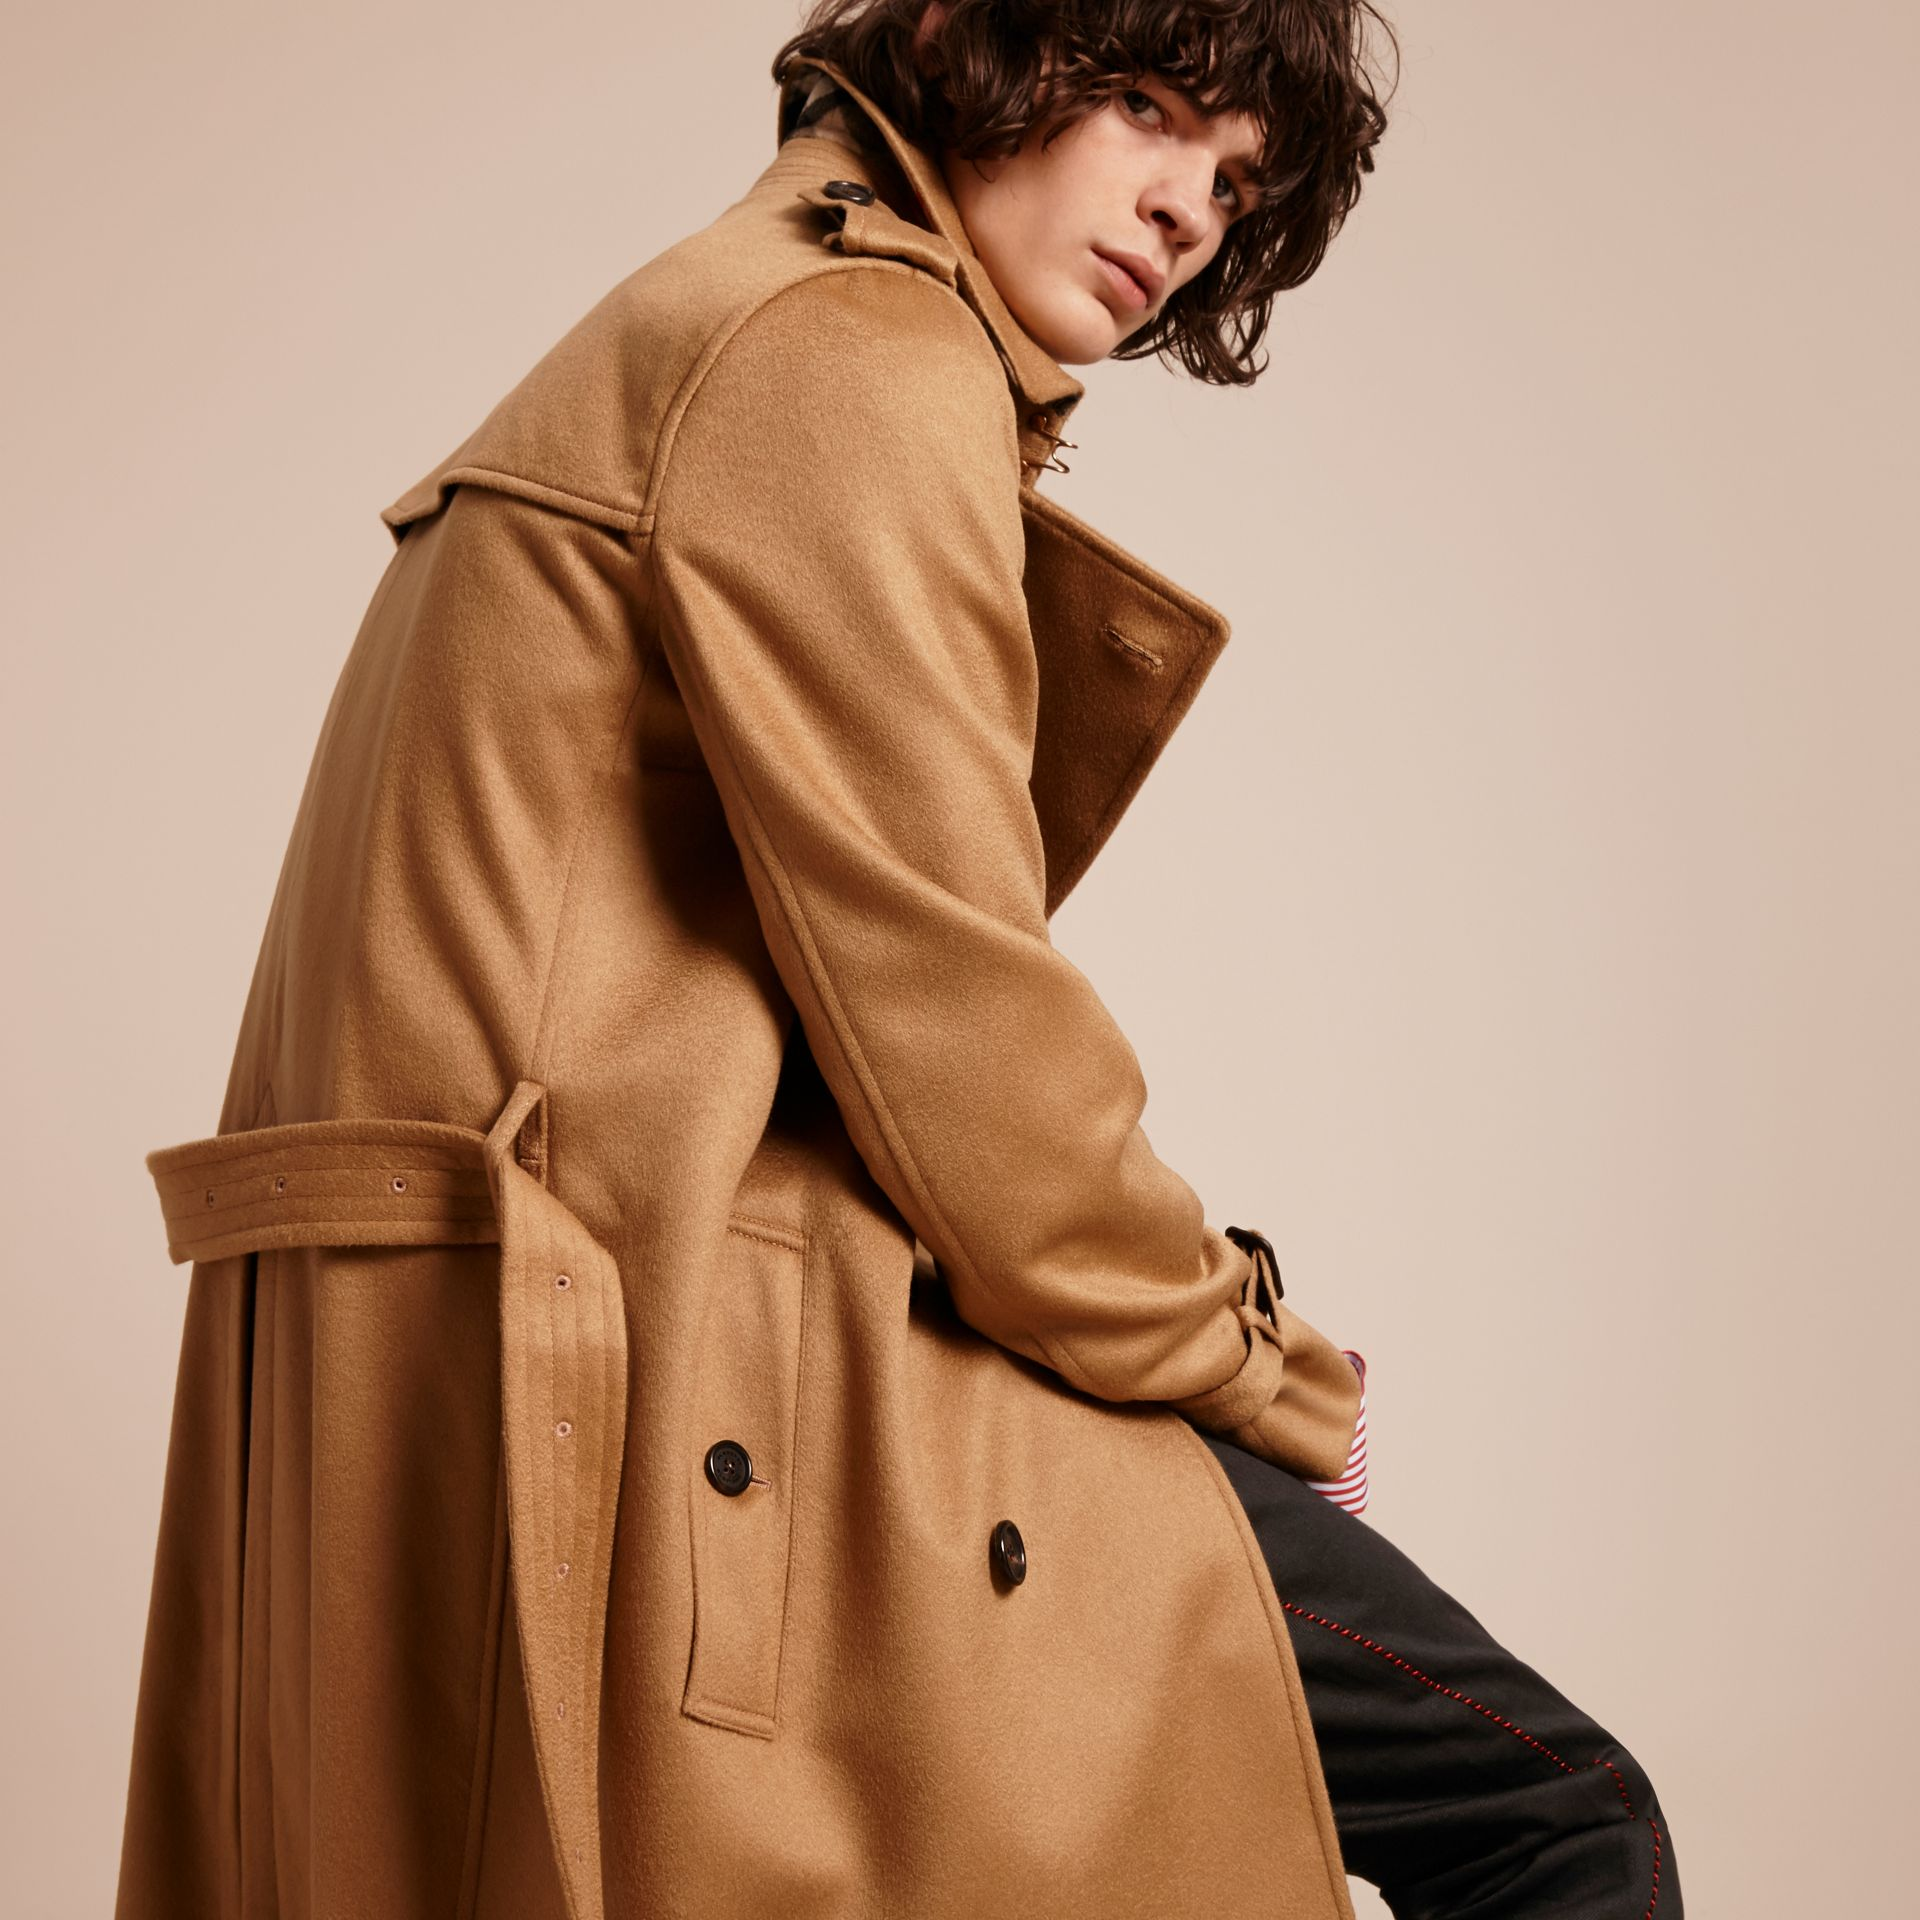 Cashmere Trench Coat in Dark Camel - Men | Burberry United States - gallery image 7